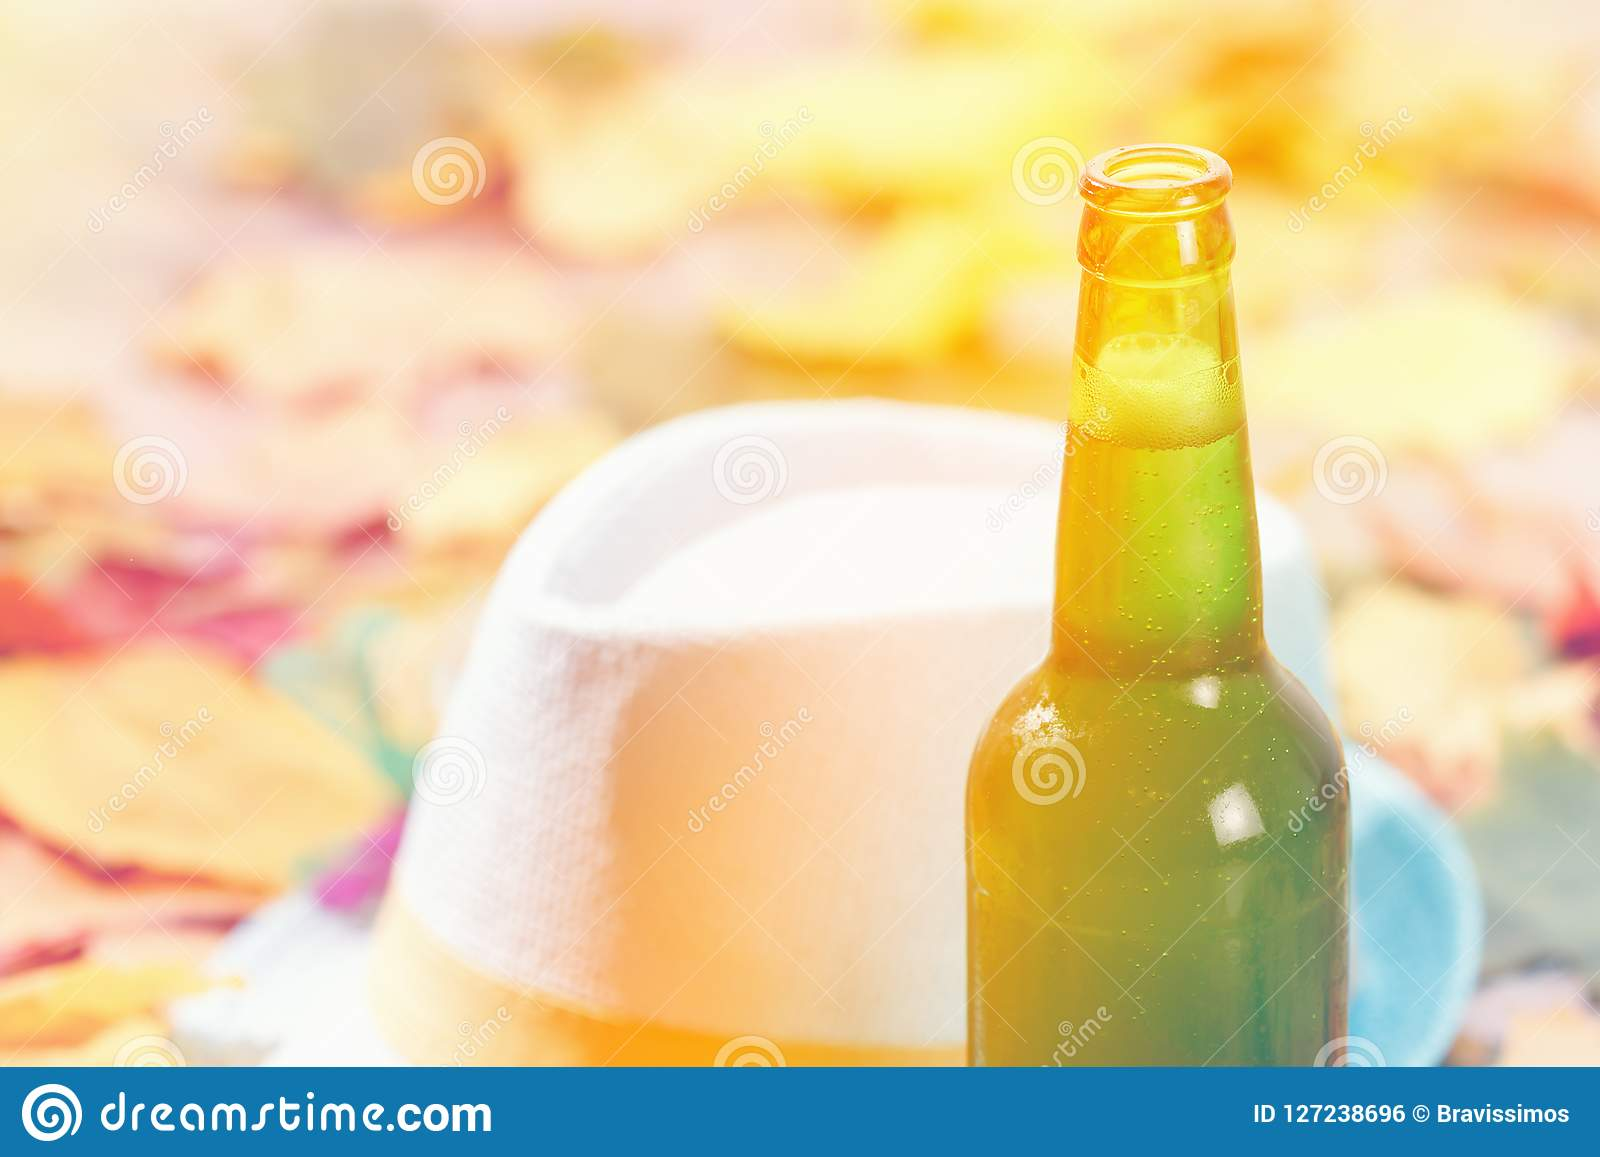 Bottle of Beer glass pint octoberfest picnic on natural background with hat and autumn leaves